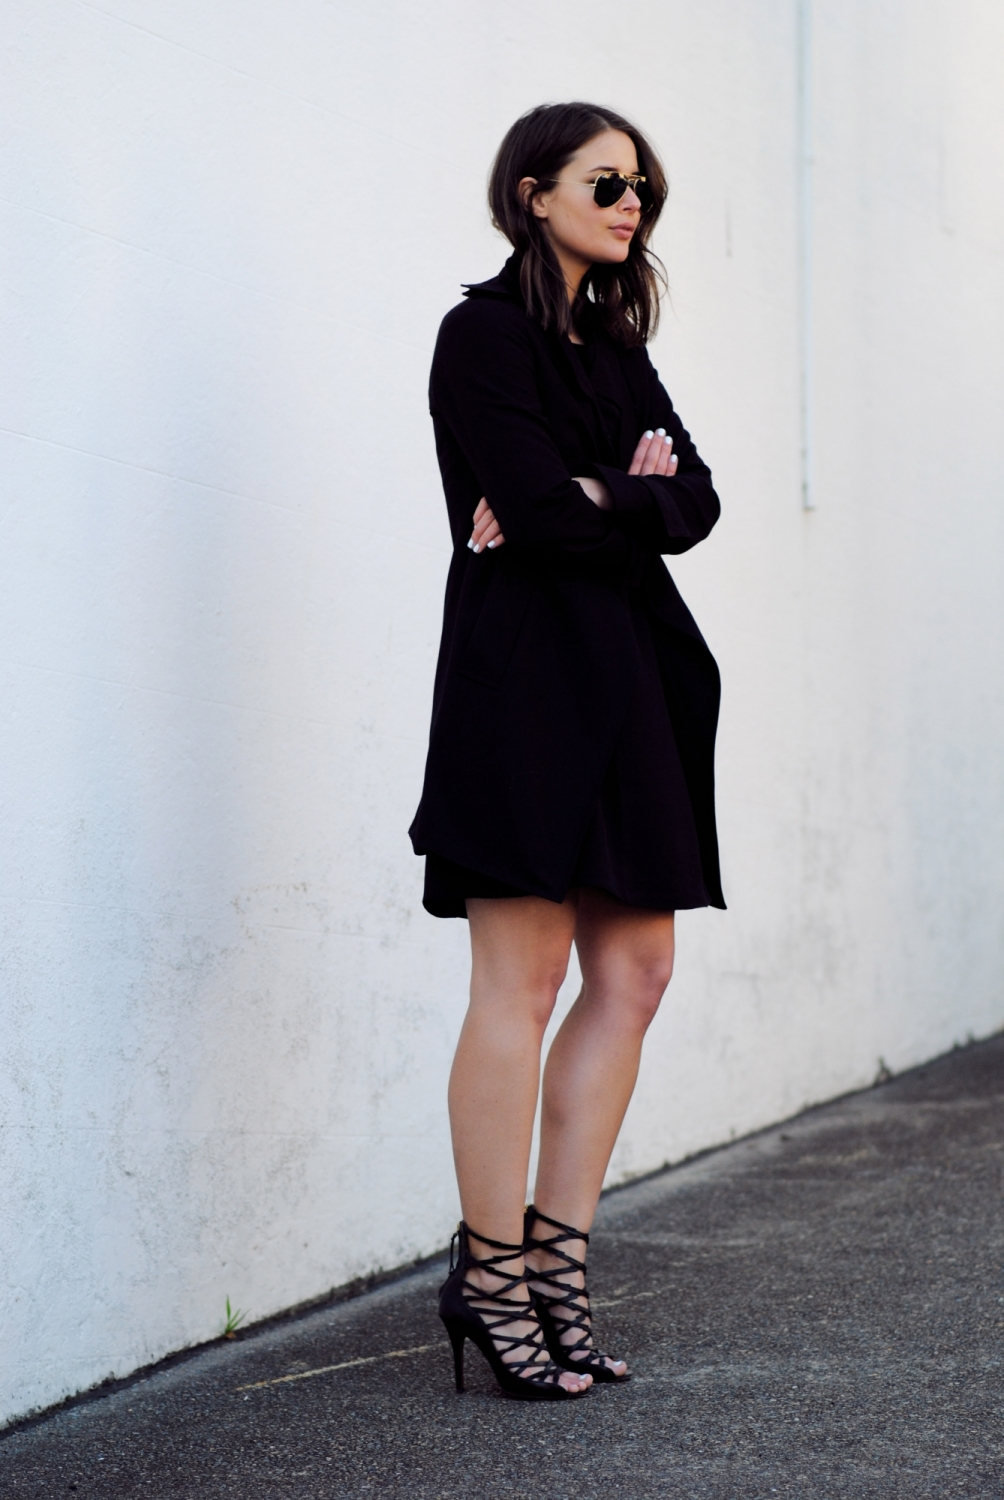 harper and harley_fashion style blogger_black outfit_asos dress_03_